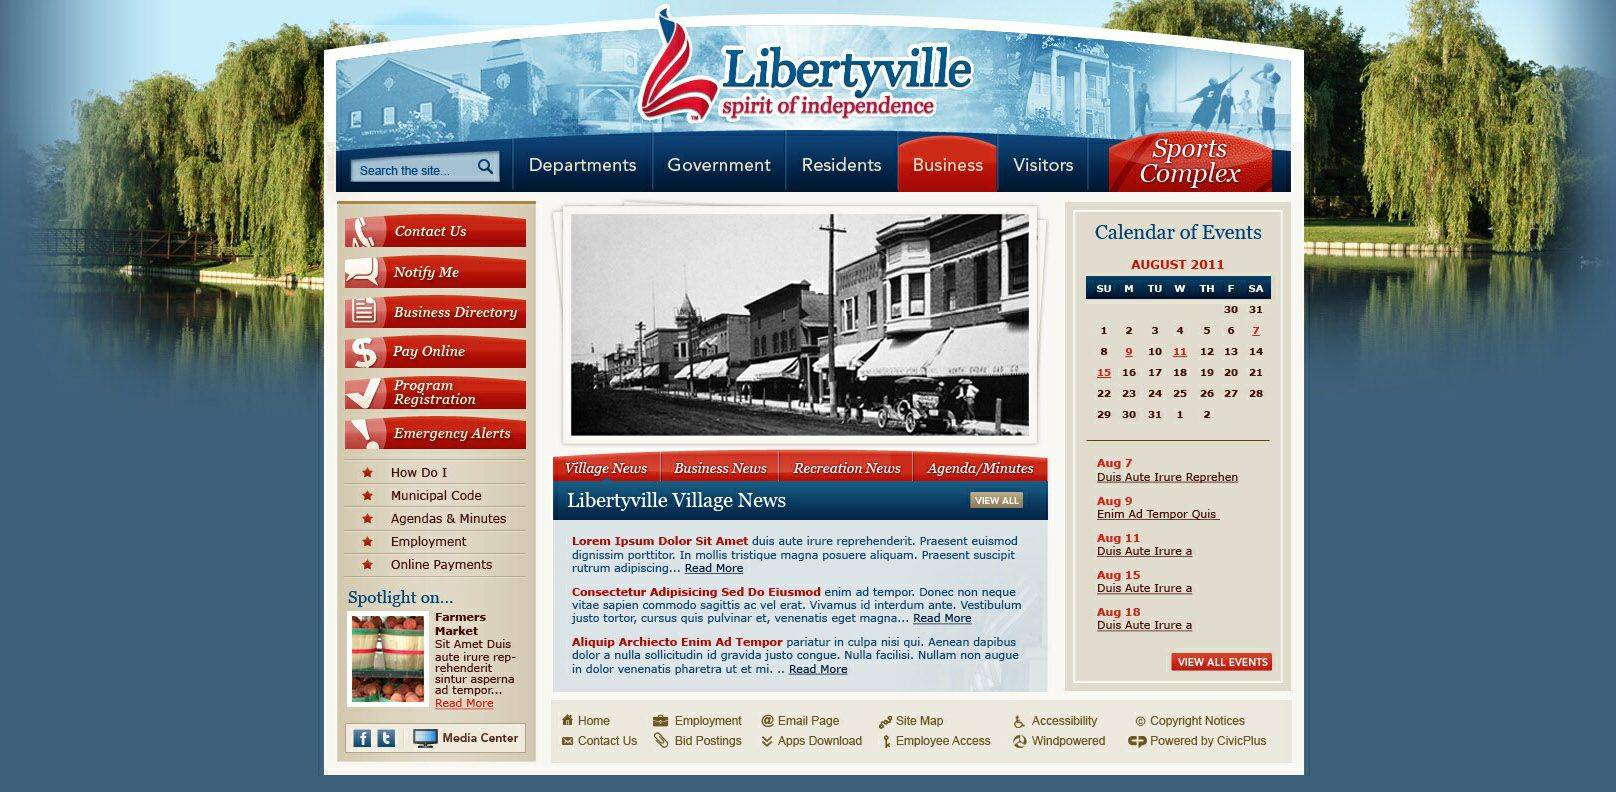 Libertyville increases its online presence